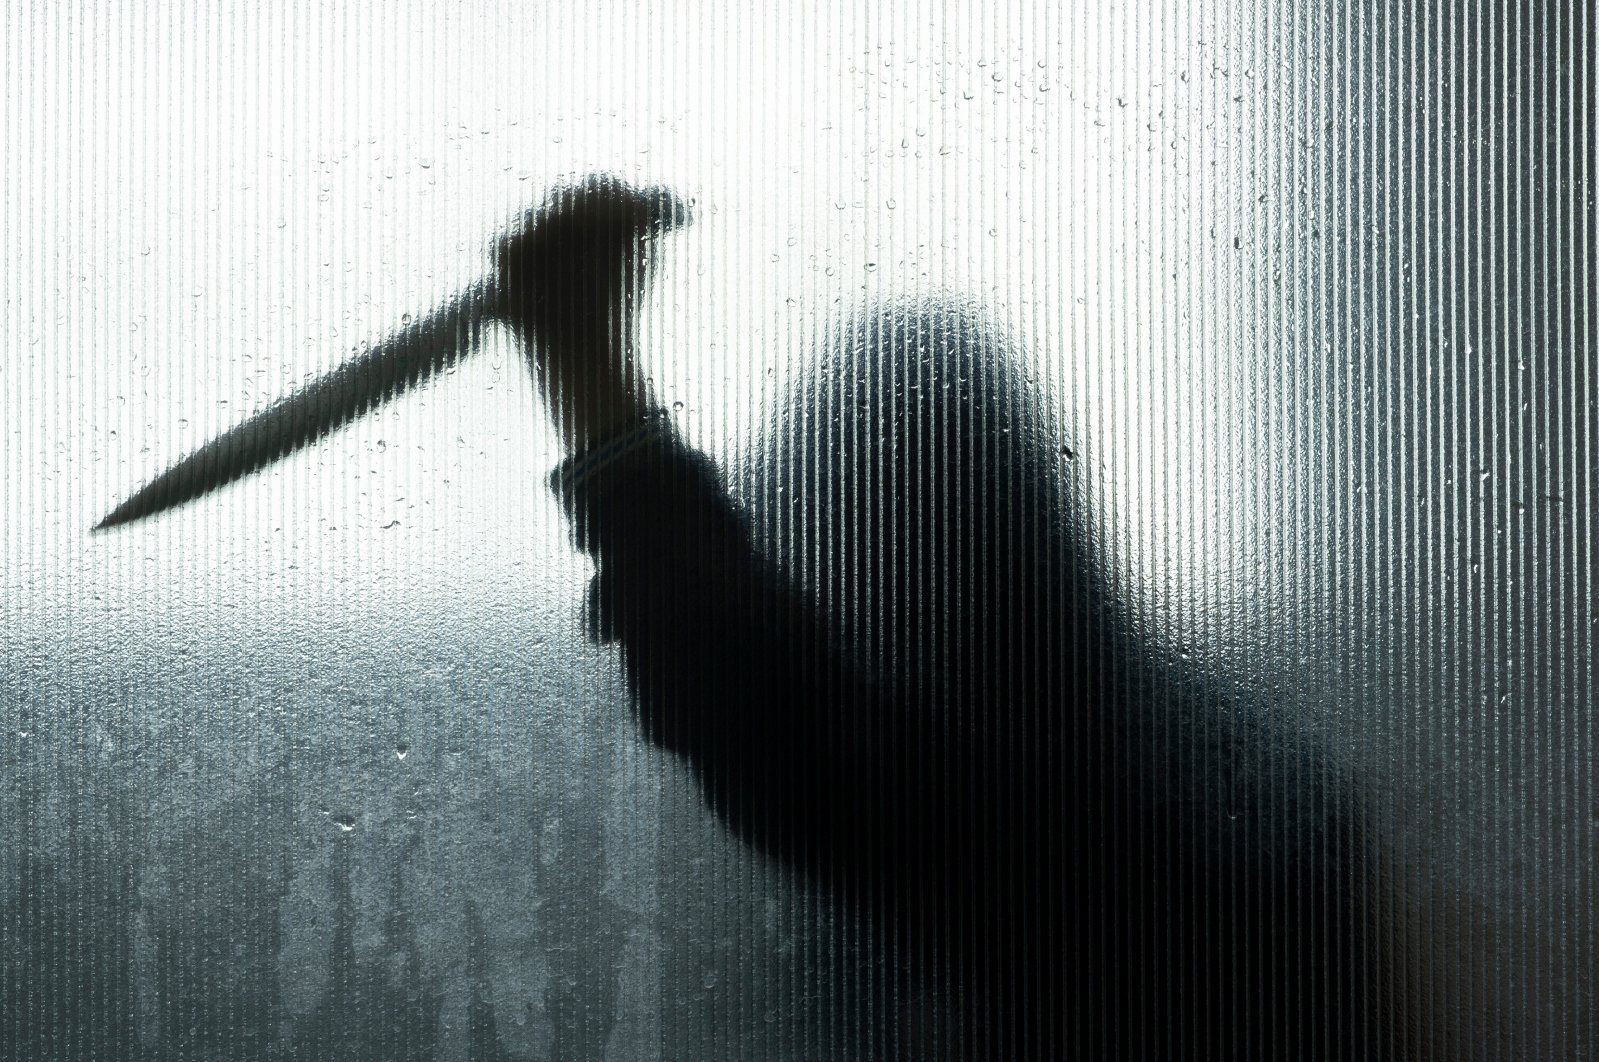 Blurred shadow of hand holding knife behind frosted glass in the bathroom. (Shutterstock Photo)